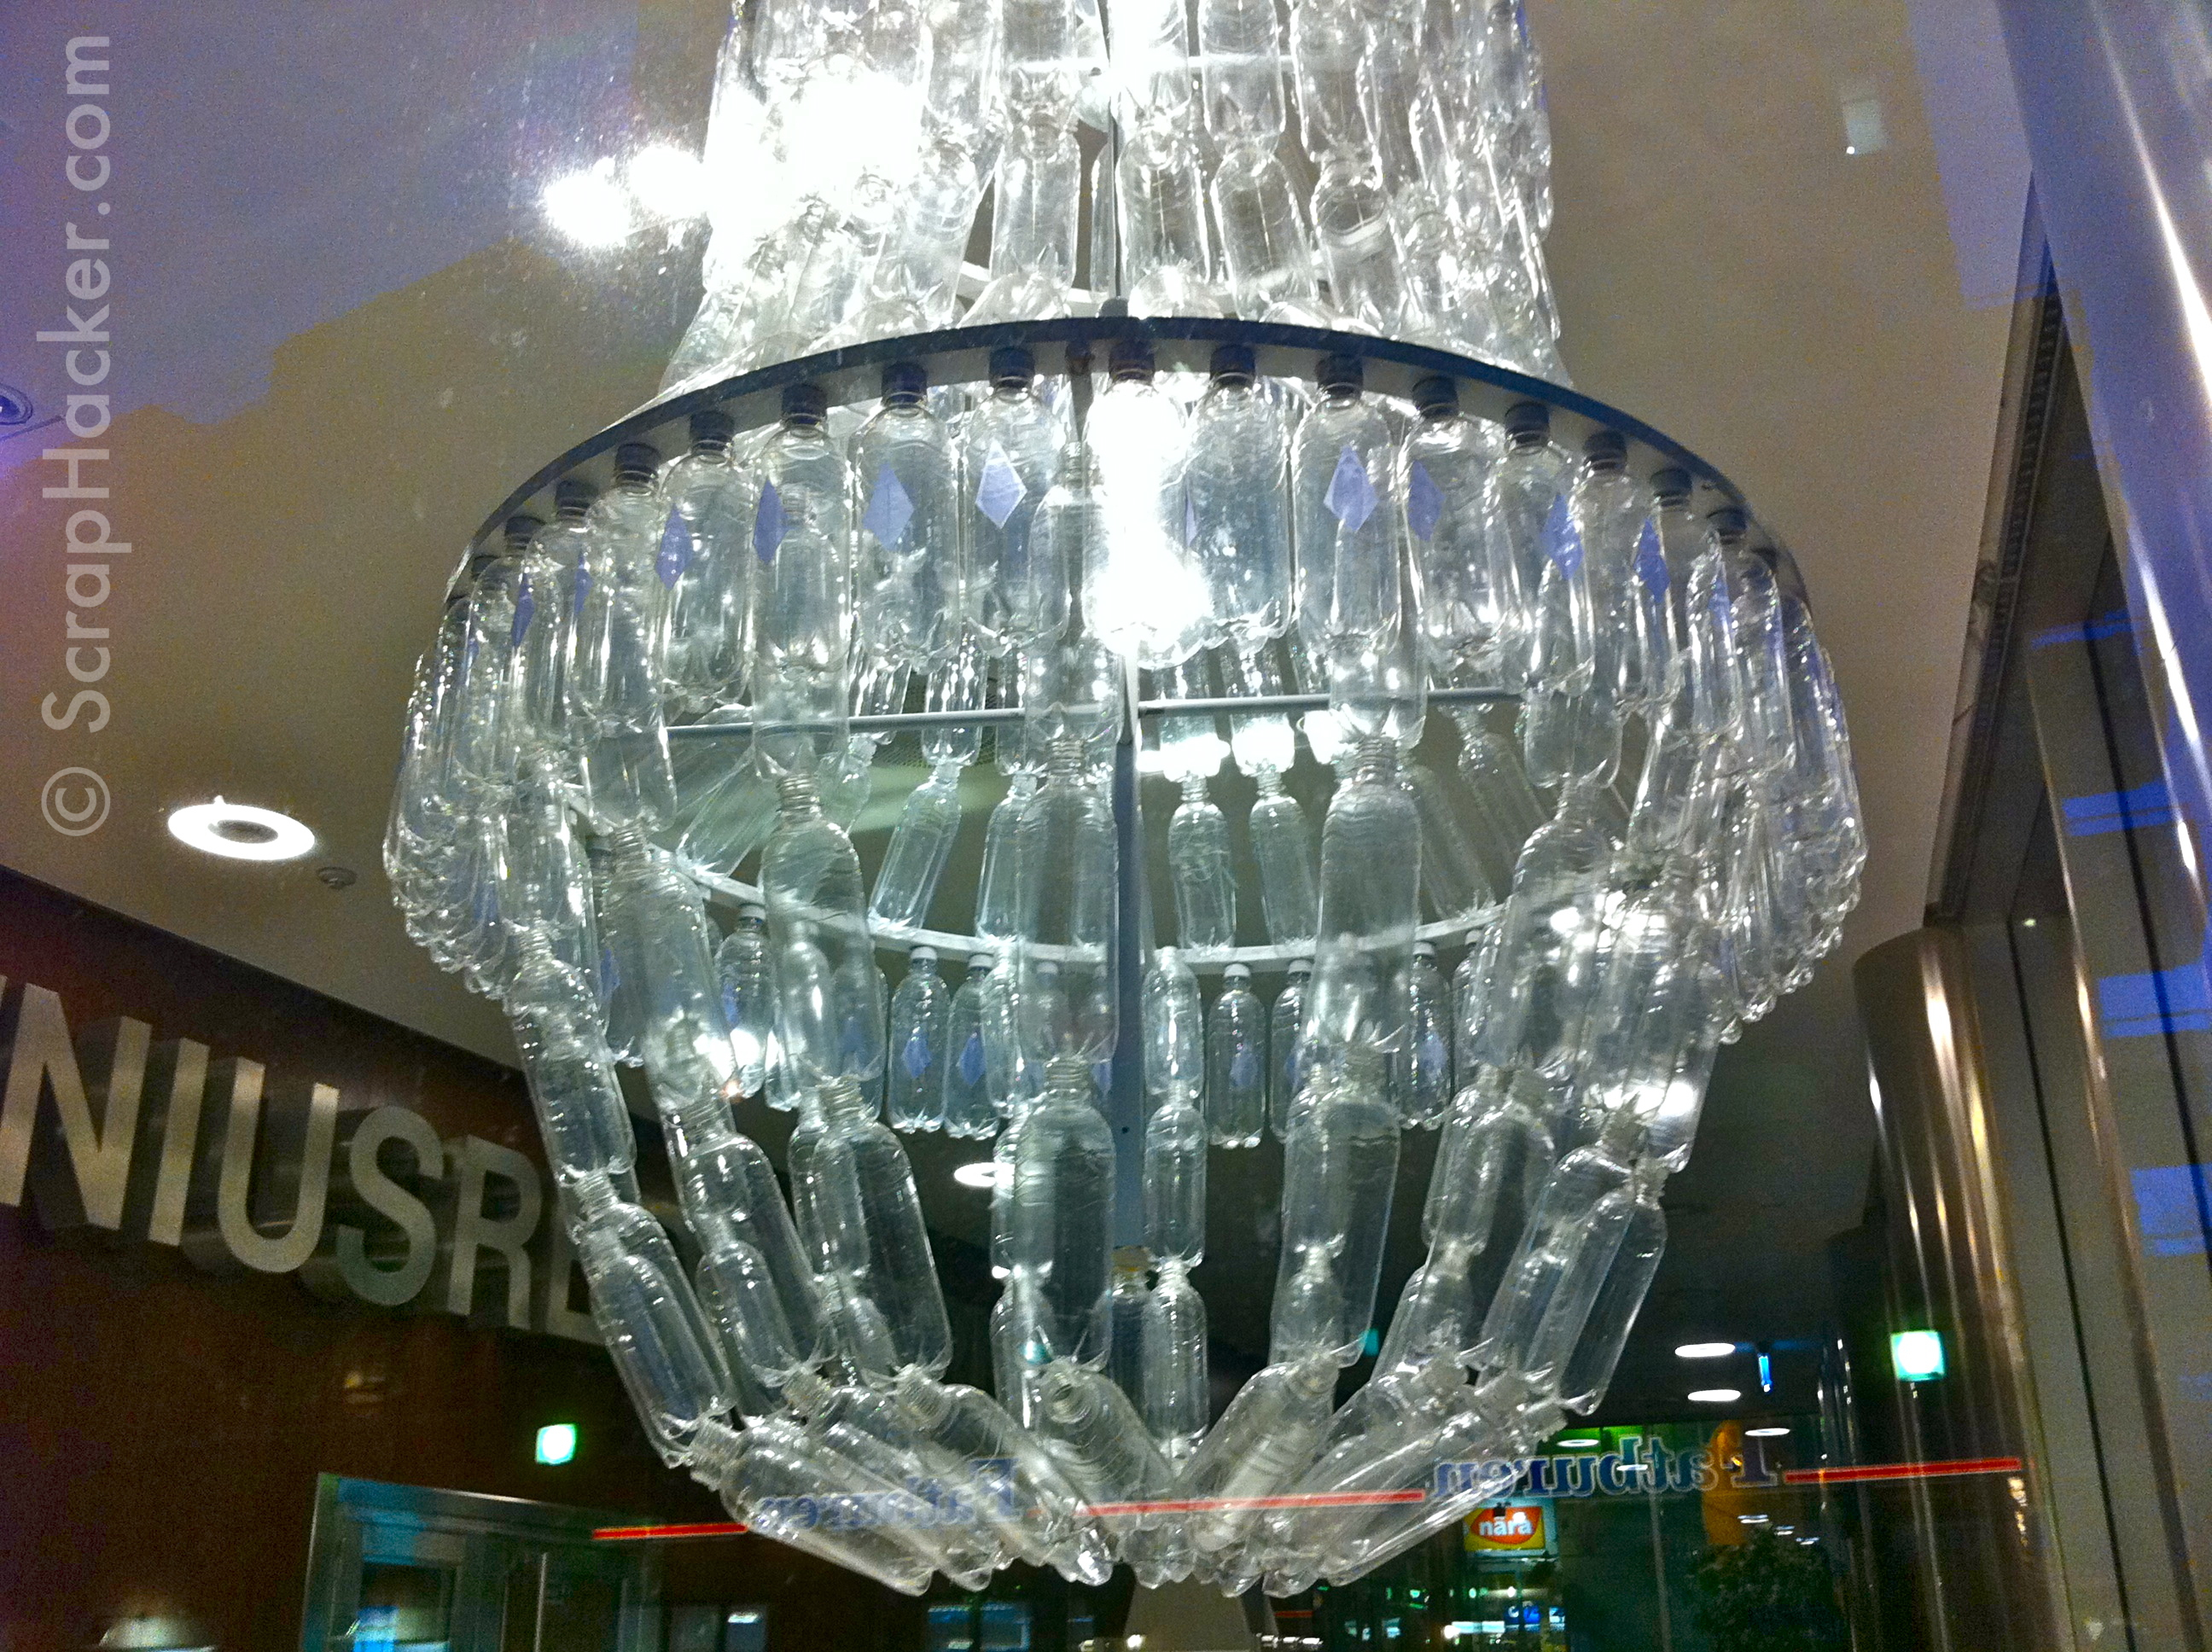 Recycled Plastic Bottle Lamp Genius In A Bottle The Amazing Plastic Bottle Chandelier